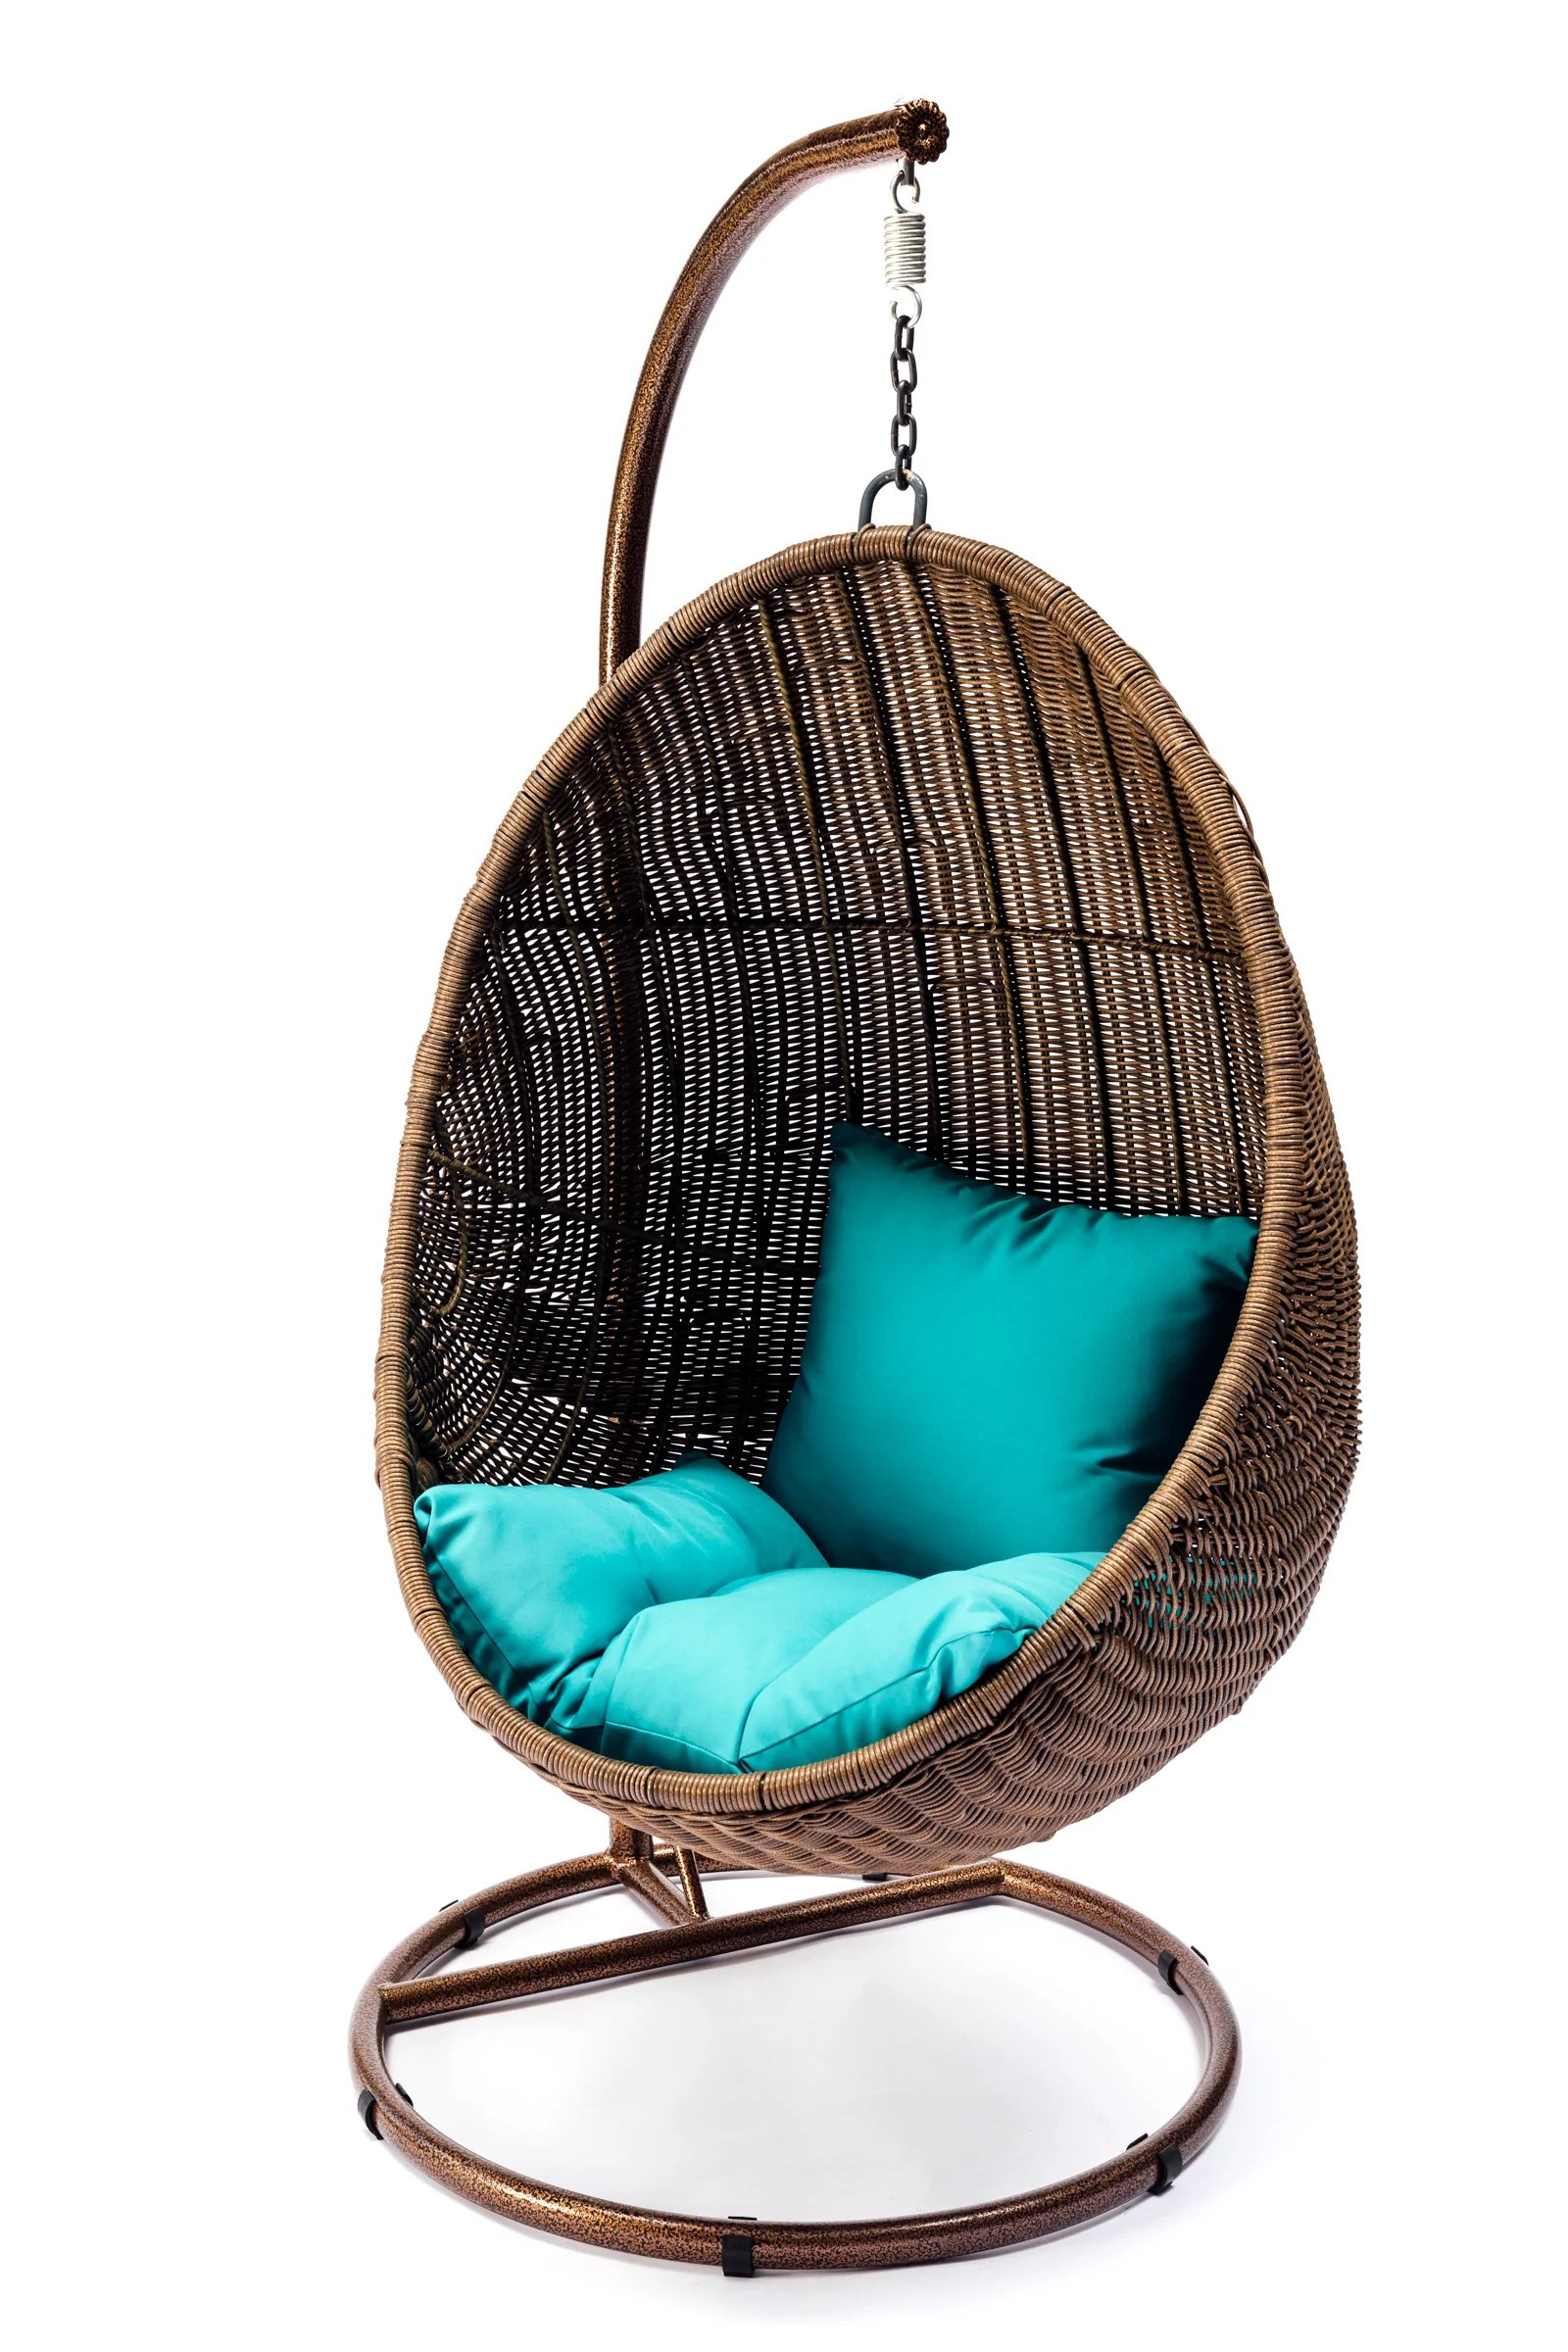 Wicker Egg Chairs For Sale Wicker Egg Swing Chair